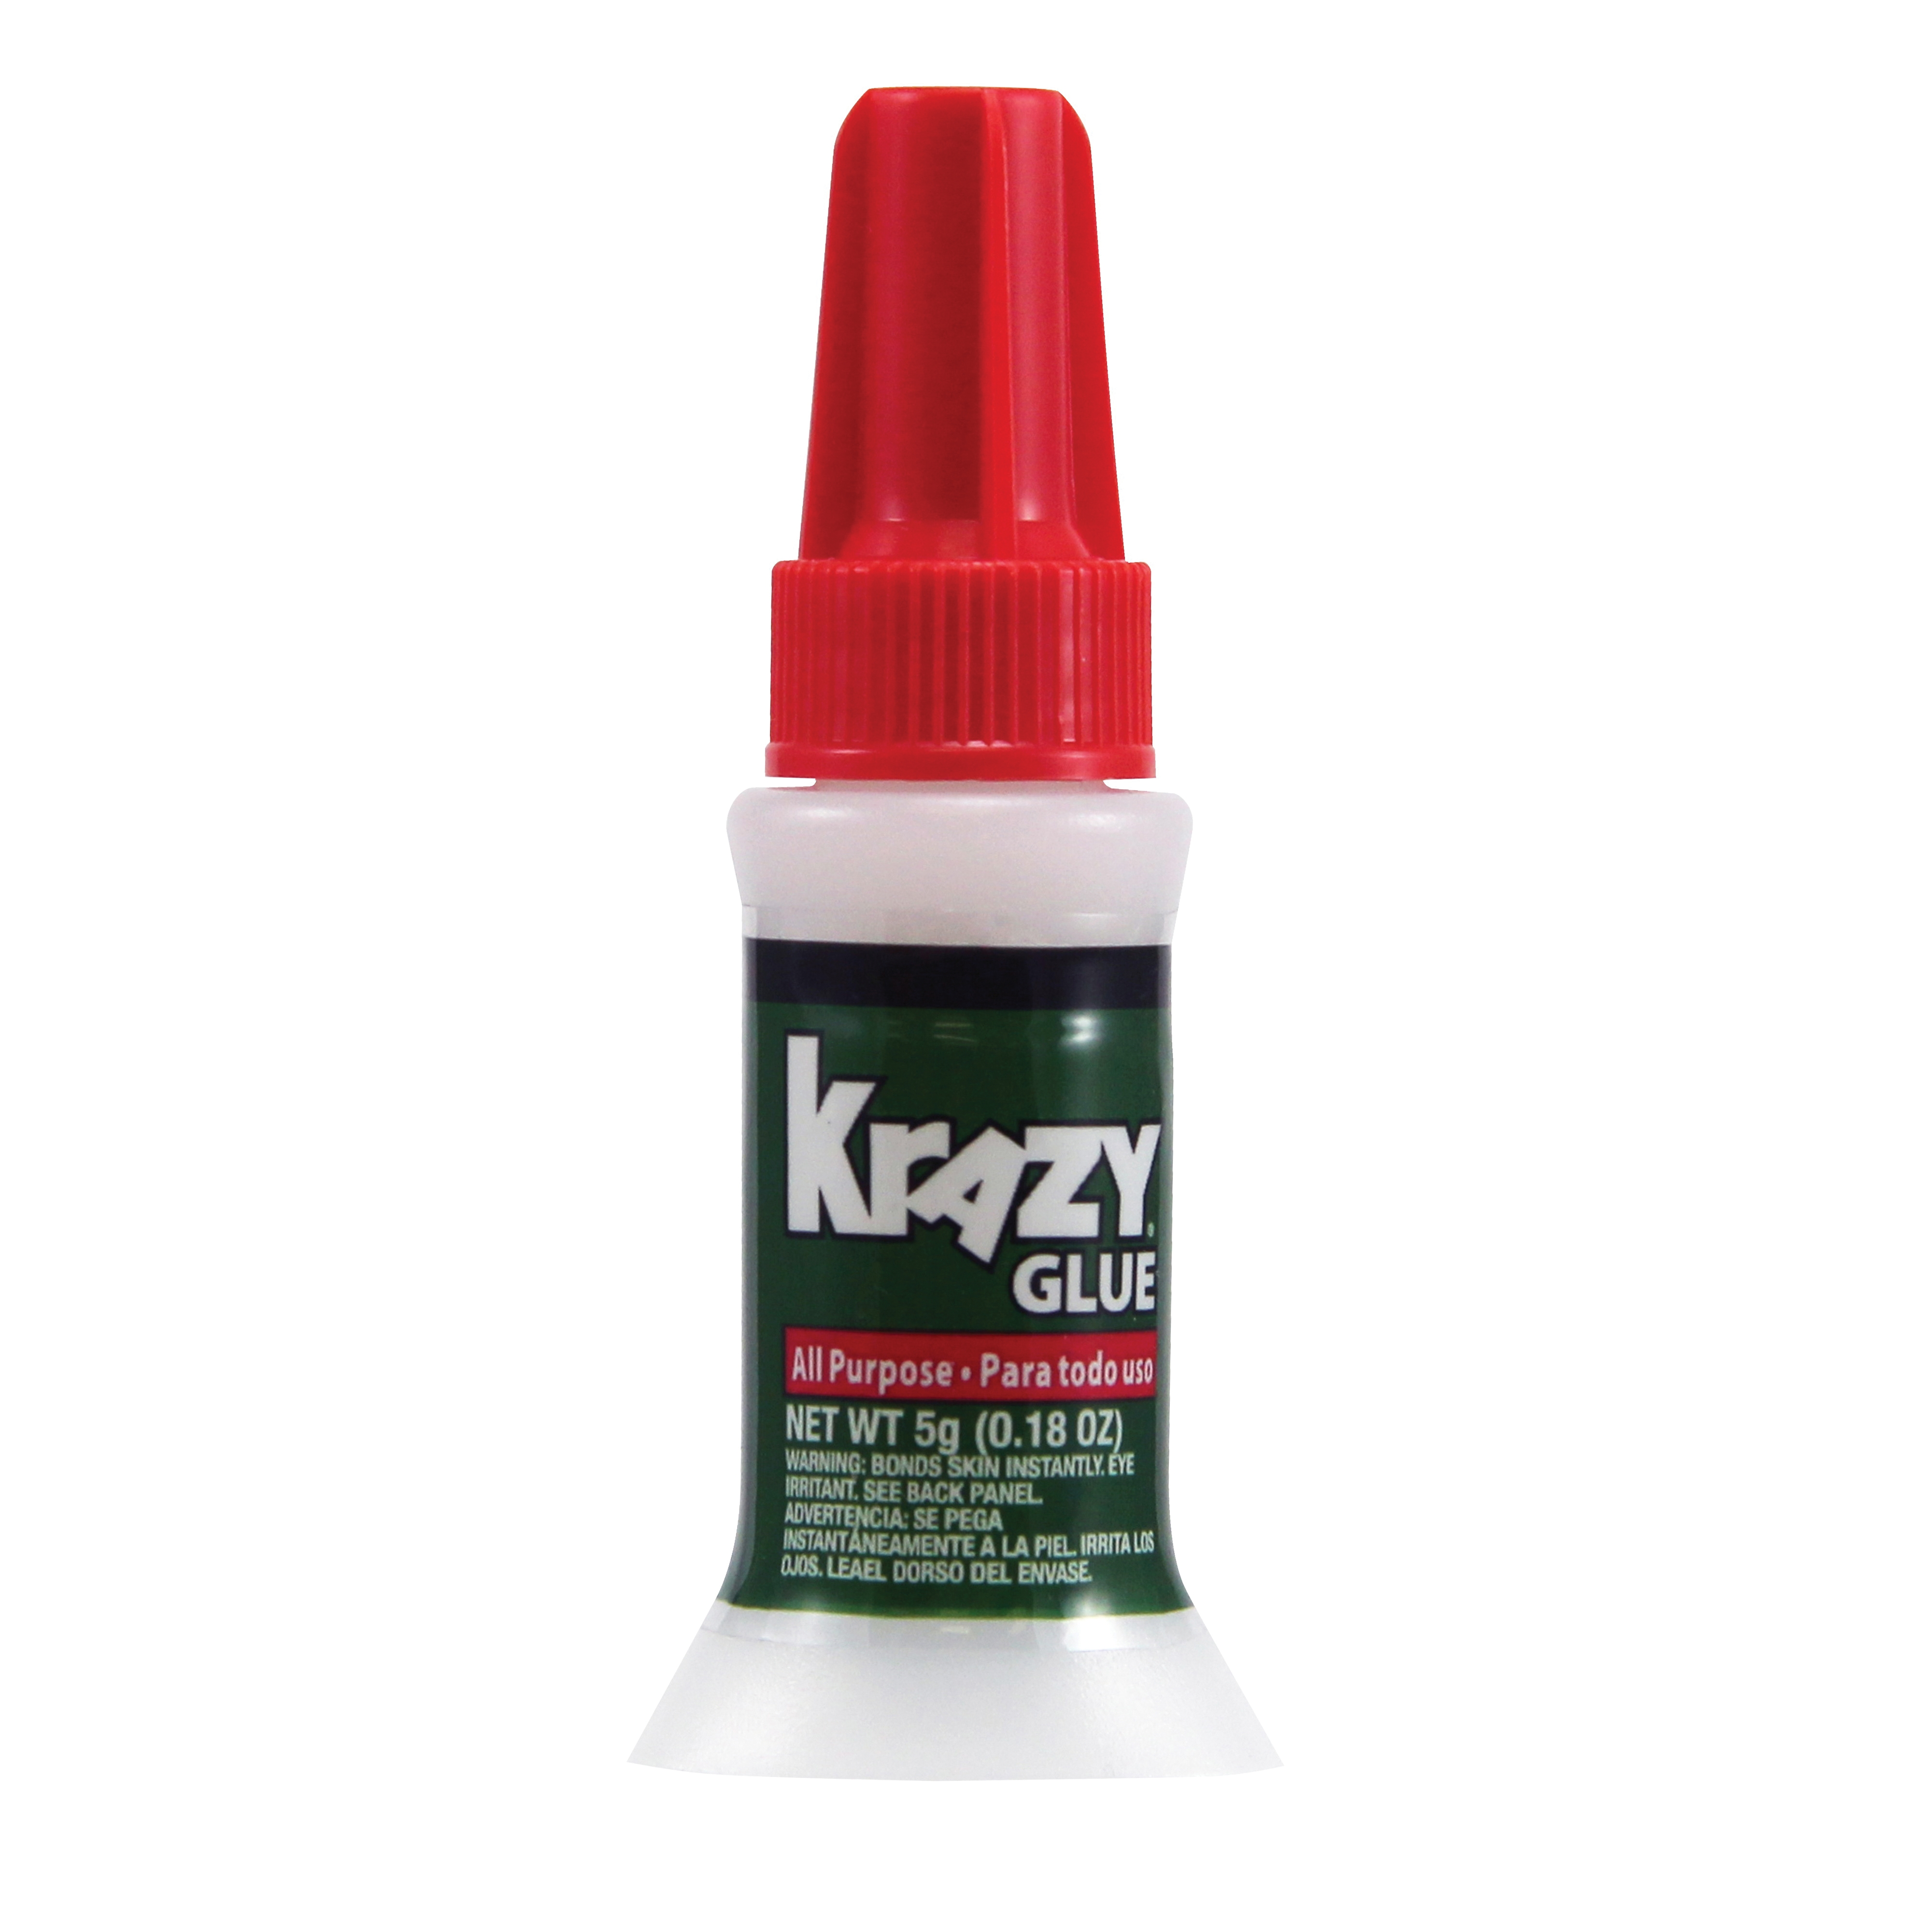 Picture of Krazy Glue KG92548R Brush-On Glue, Liquid, Irritating, Clear, 5 g Package, Tube